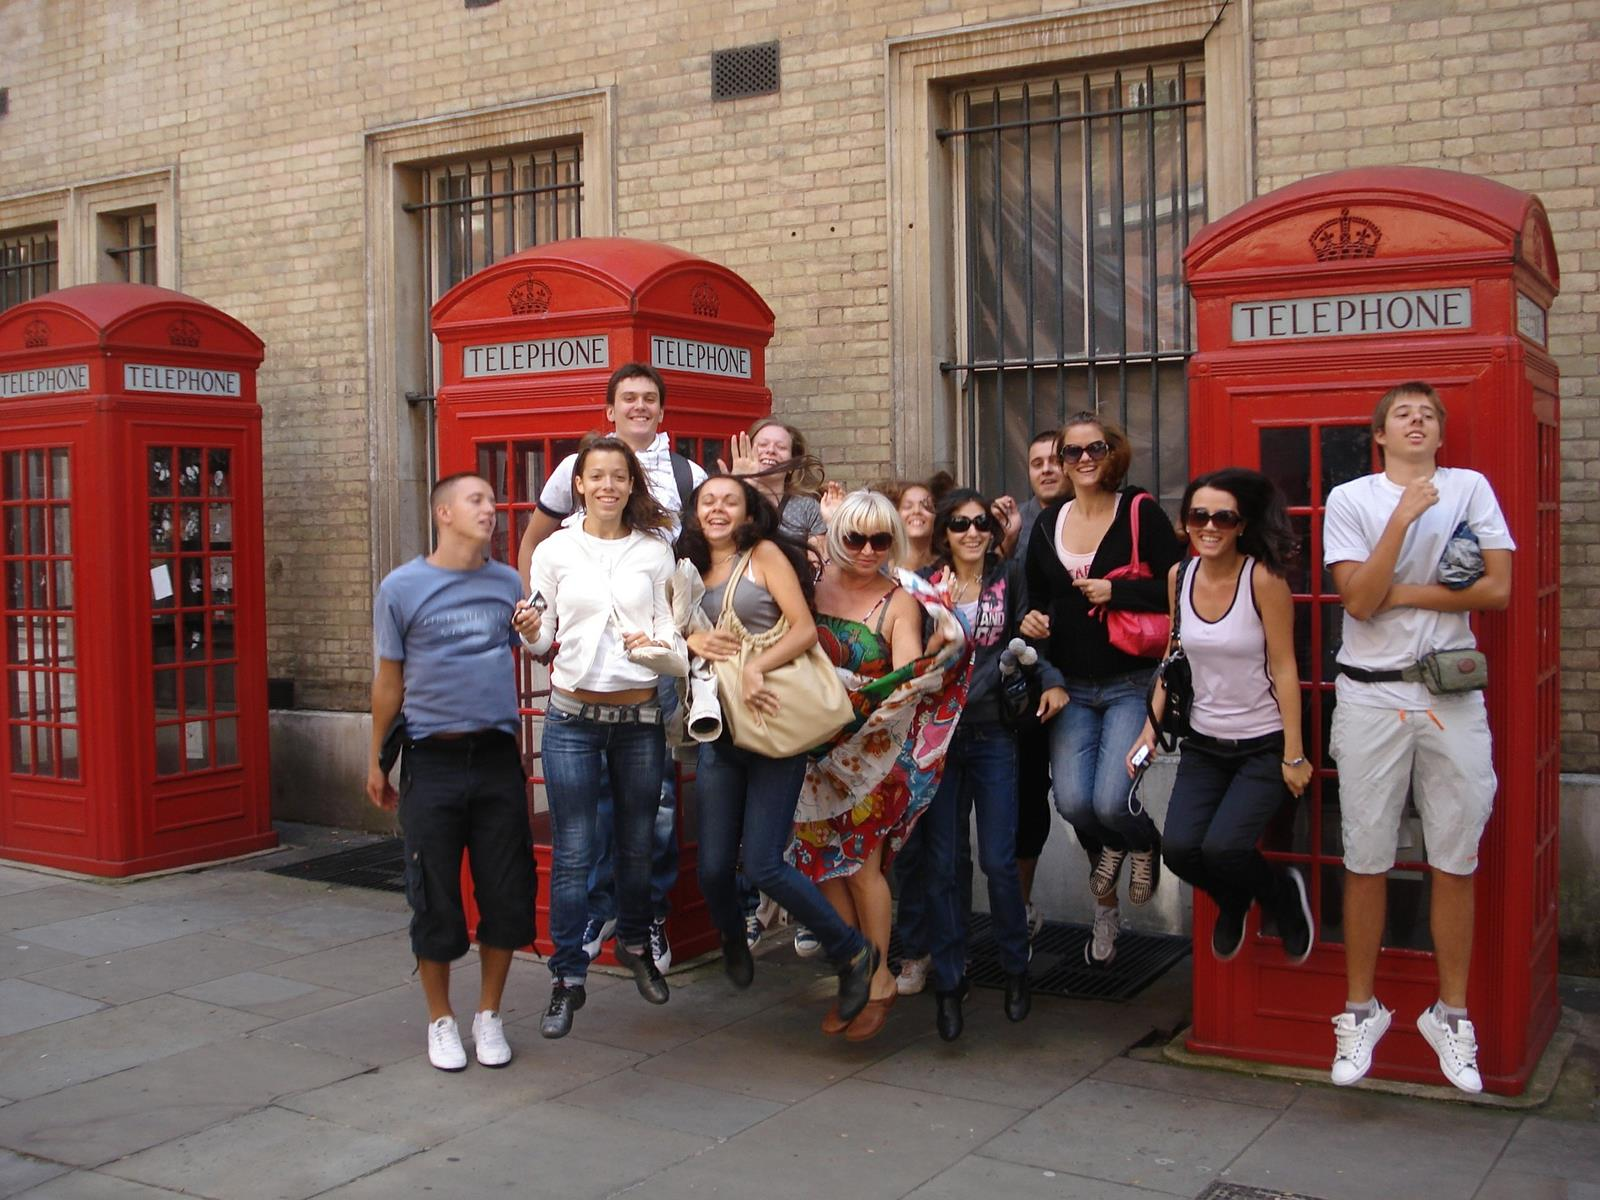 Things to Consider When Planning a Student Trip to London